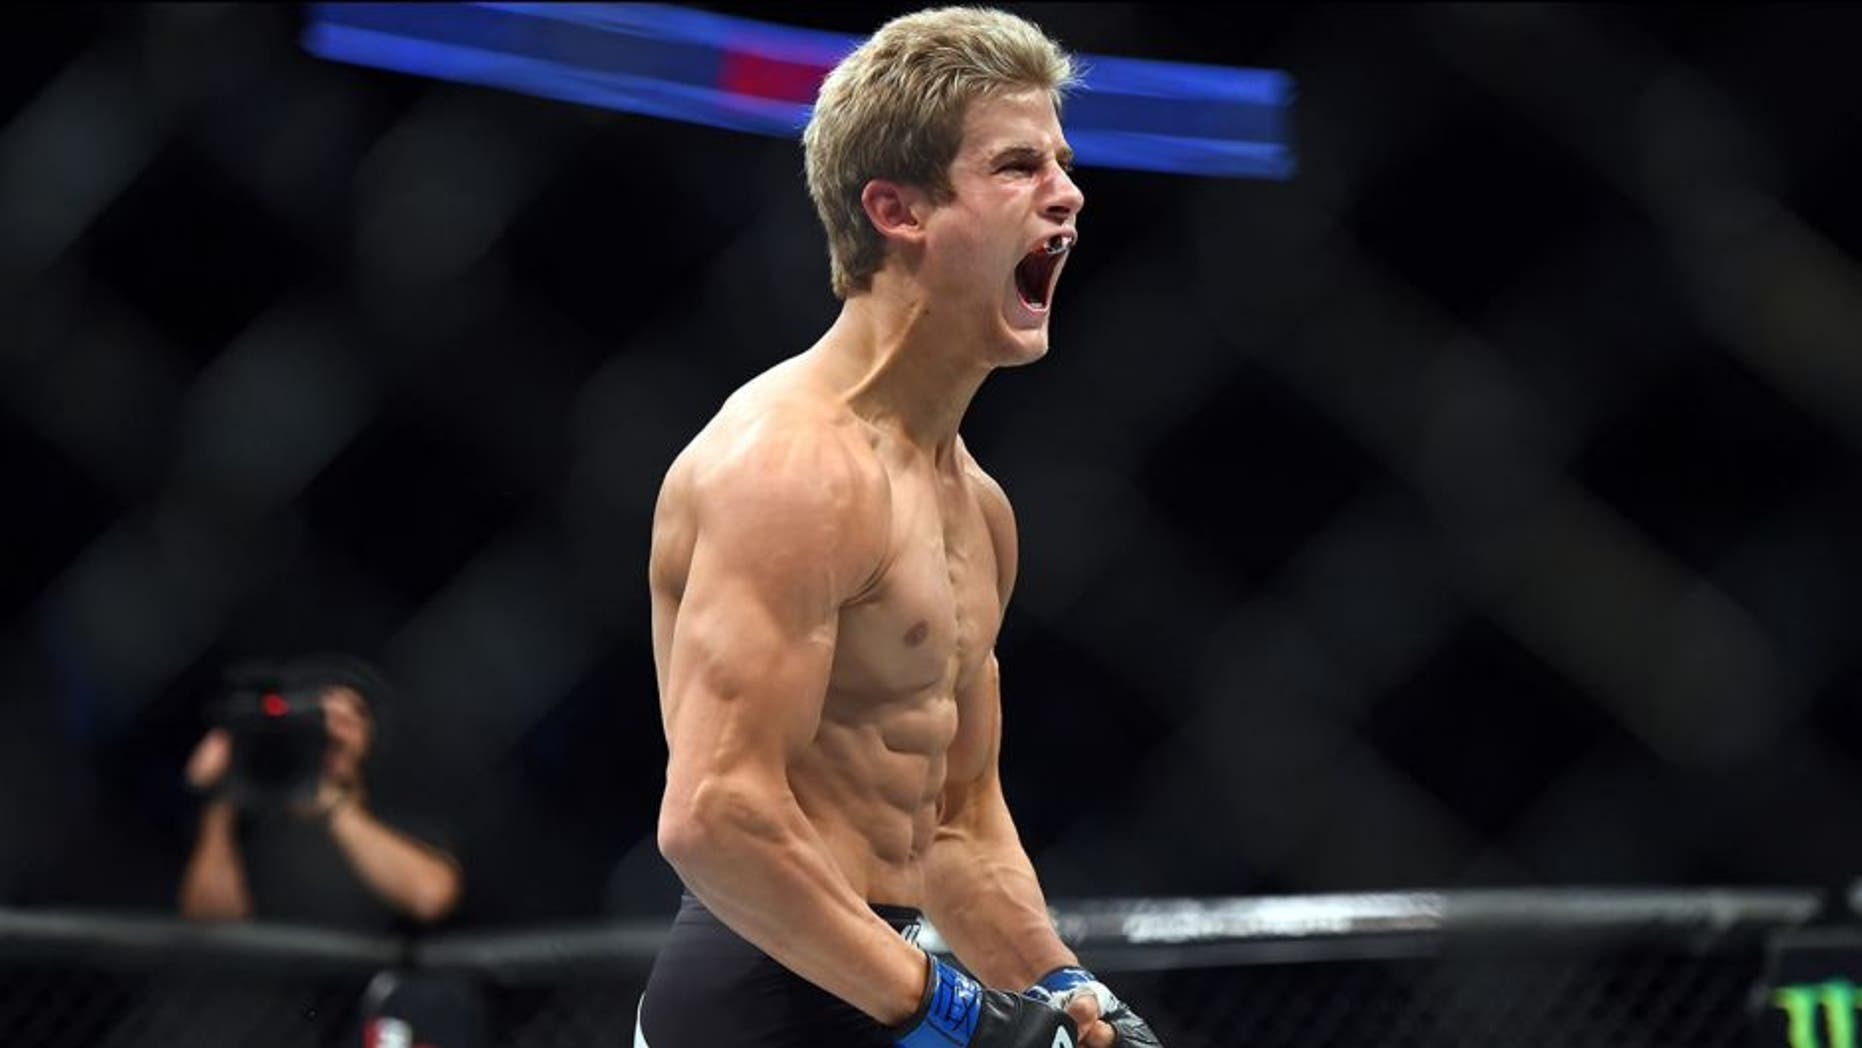 HOUSTON, TX - OCTOBER 03: Sage Northcutt celebrates after defeating Francisco Trevino in their lightweight bout during the UFC 192 event at the Toyota Center on October 3, 2015 in Houston, Texas. (Photo by Jeff Bottari/Zuffa LLC/Zuffa LLC via Getty Images)